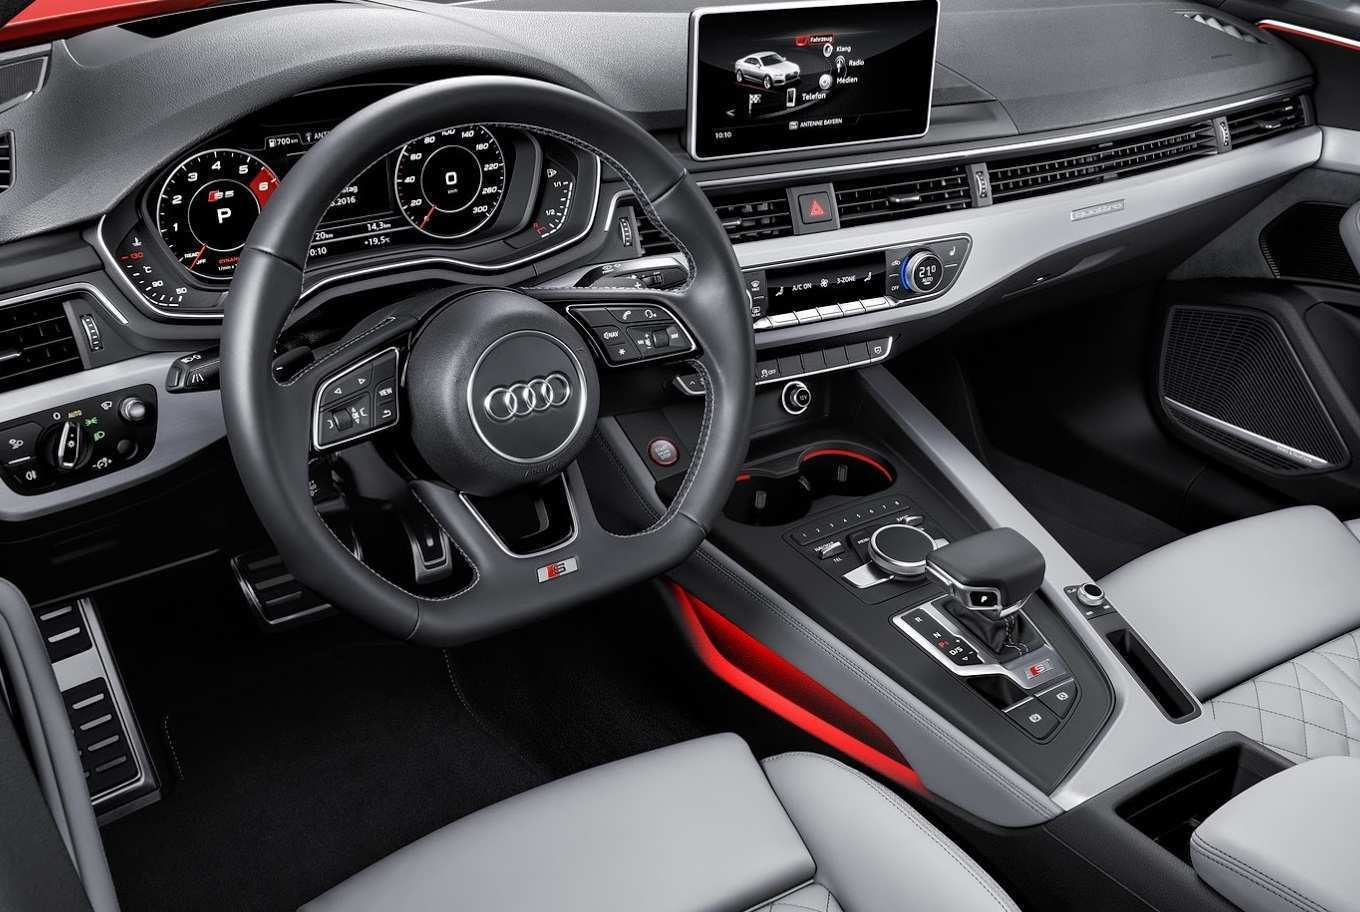 86 Best Review 2020 Audi A5 Price and Review with 2020 Audi A5